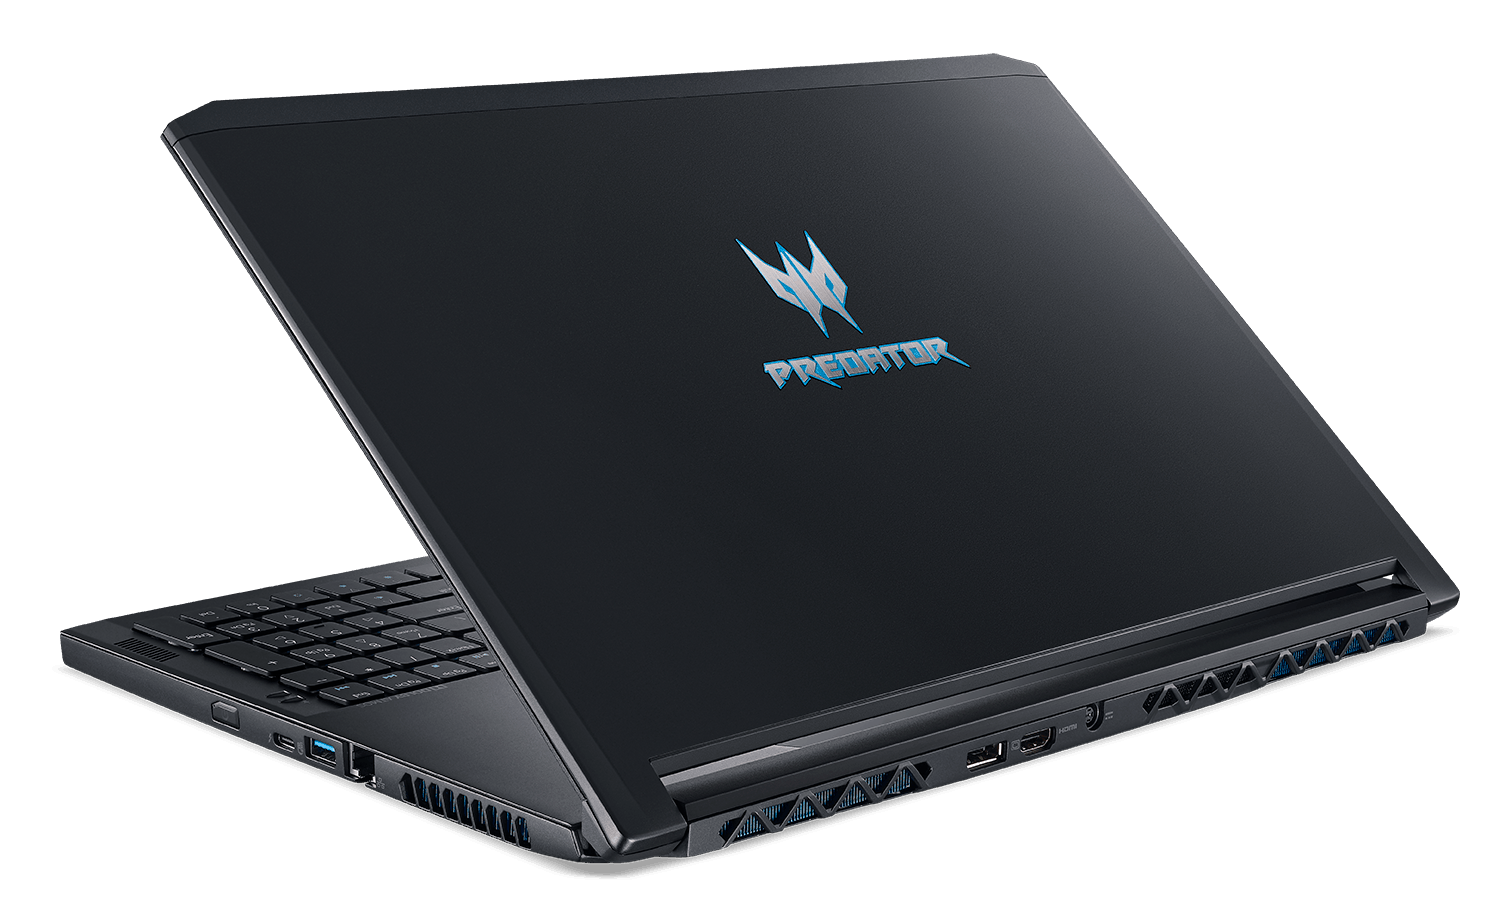 acer predator triton 700 amazon australia avis (helios 300 and 700) 500 vs 900 helios akku battery replacement buy bios life best price in bangladesh bateria brasil is good core i7 7th gen review charger cena caracteristicas cũ cargador drivers disassembly hard drive ebay eladó fan flipkart for sale fiyat gaming laptop gtx 1060 1080 max-q giá - 32gb 1tb harga india pakistan nepal 17 inch keyboard malaysia manual olx pt715-51 philippines pt715 release date rtx 2080 raid notebookcheck specs ssd upgrade startup sound shopee touchpad test teclado uk usato worth it 3 15 6 обзор ноутбук the 700price notebook